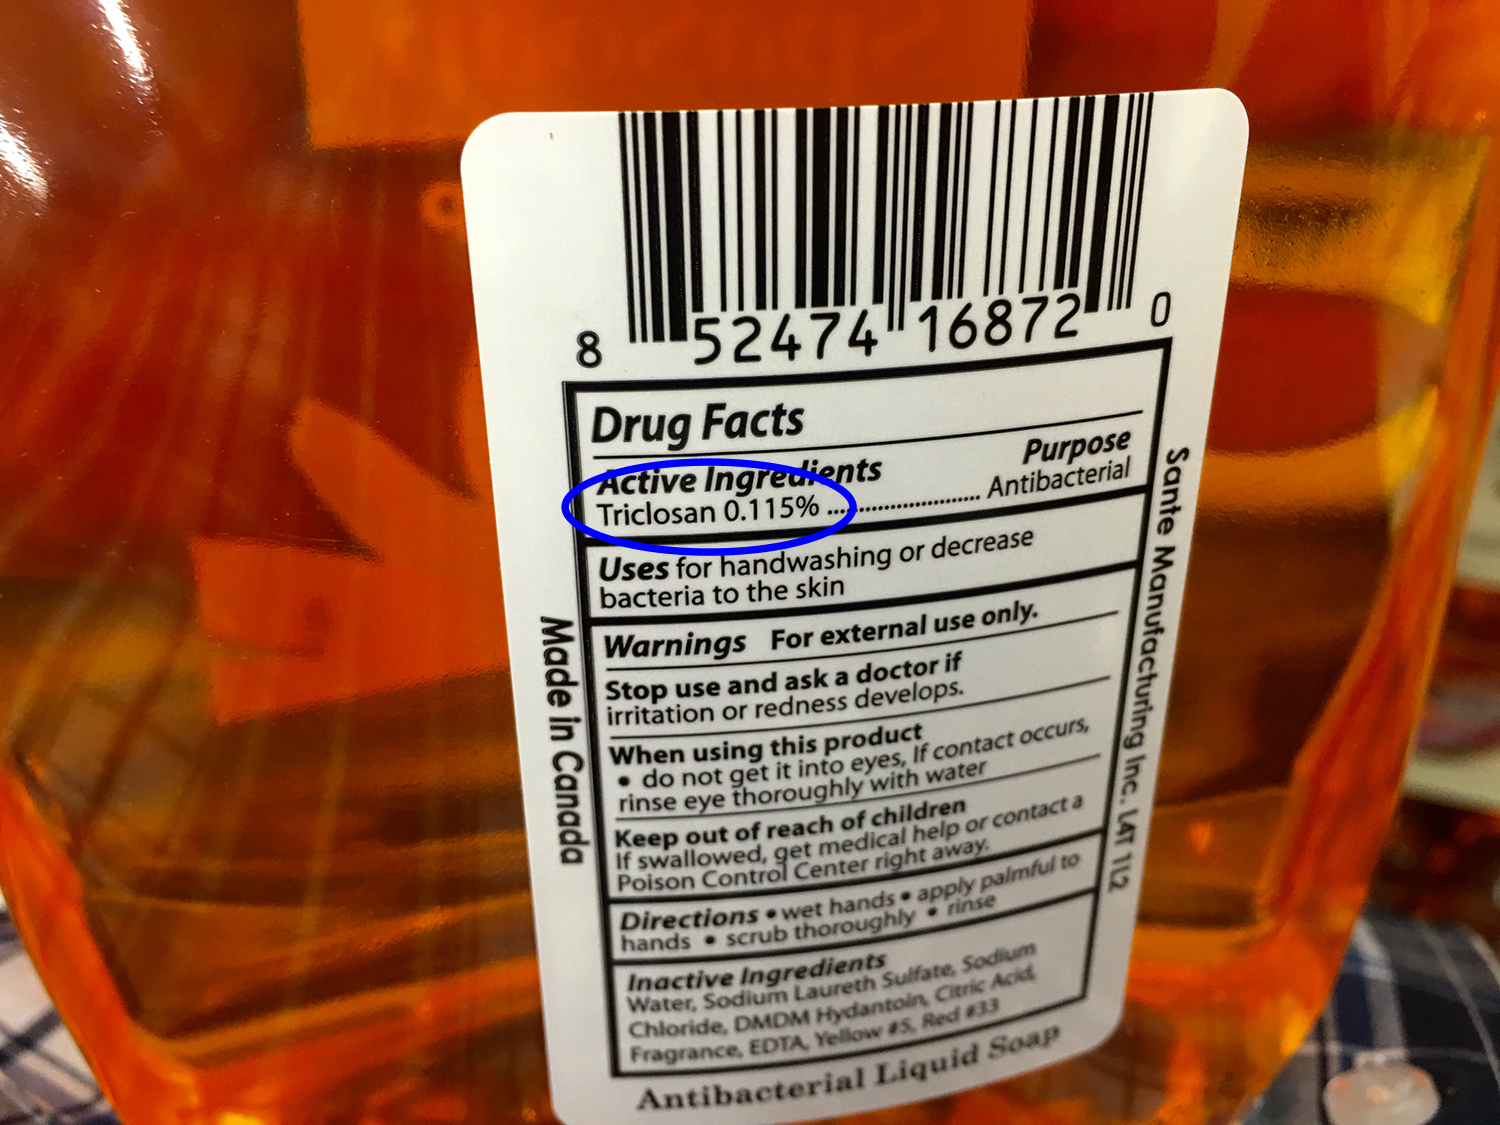 Considered toxic, triclosan is a synthetic chemical that is often found in consumer products and washing into waterways.(Photo by  Mike Mozart )